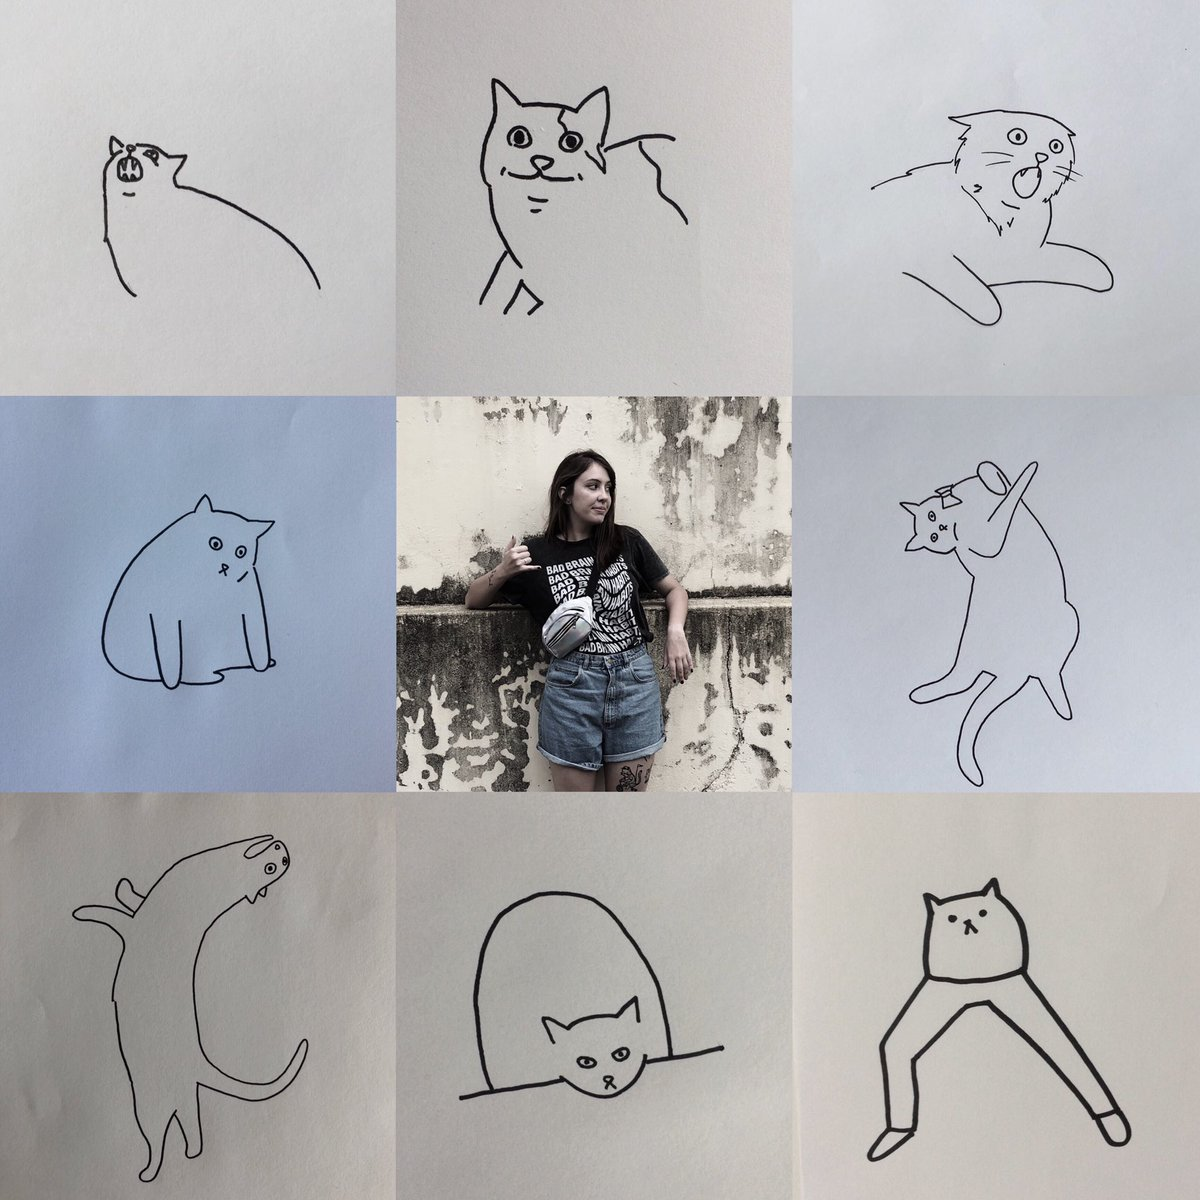 #artvartist hello this is me i draw cats and i love cats and i like to make people happy